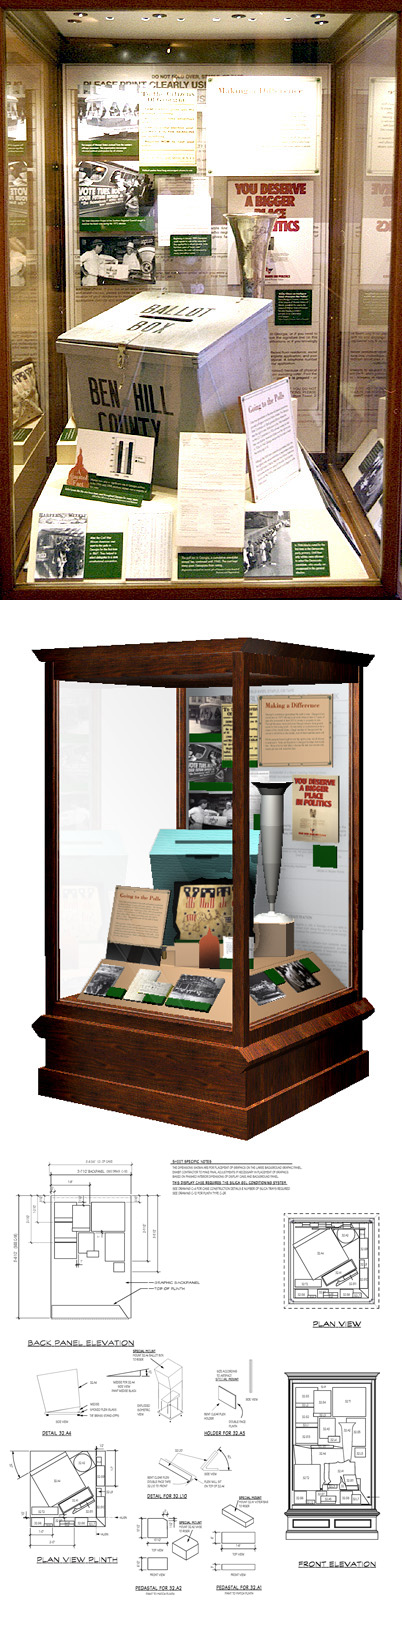 3D rendering, detail, and photo of finished case that focused on voting stories and objects.